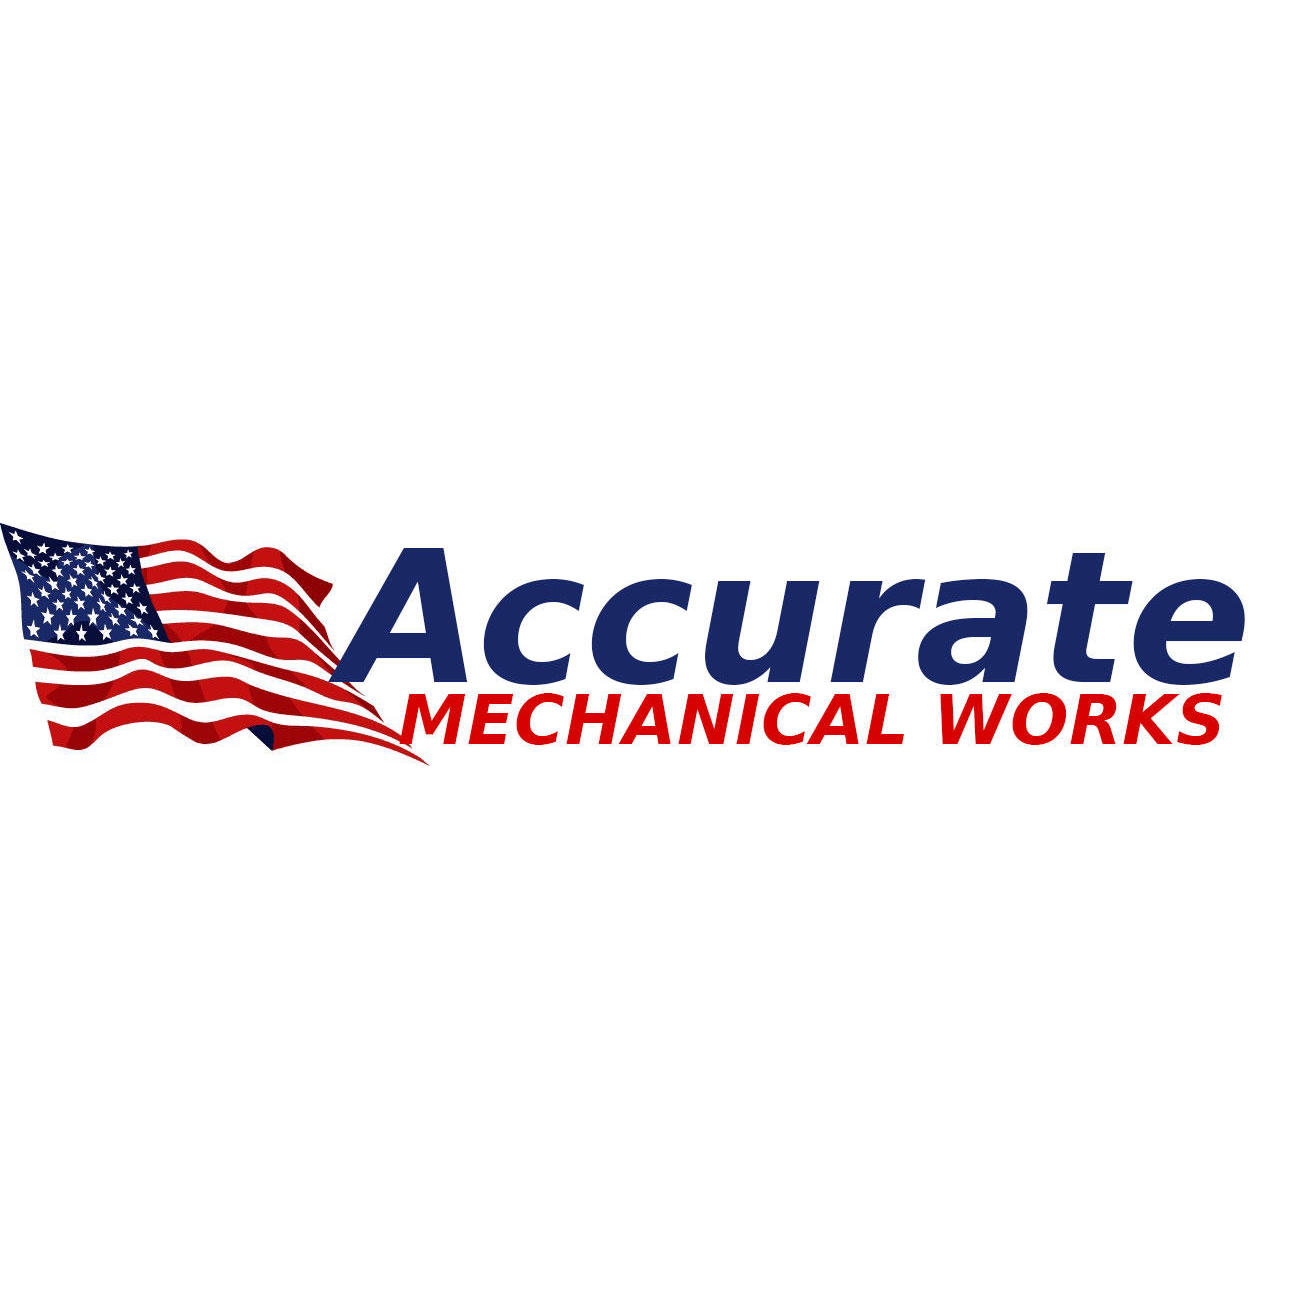 Accurate Mechanical Works Inc